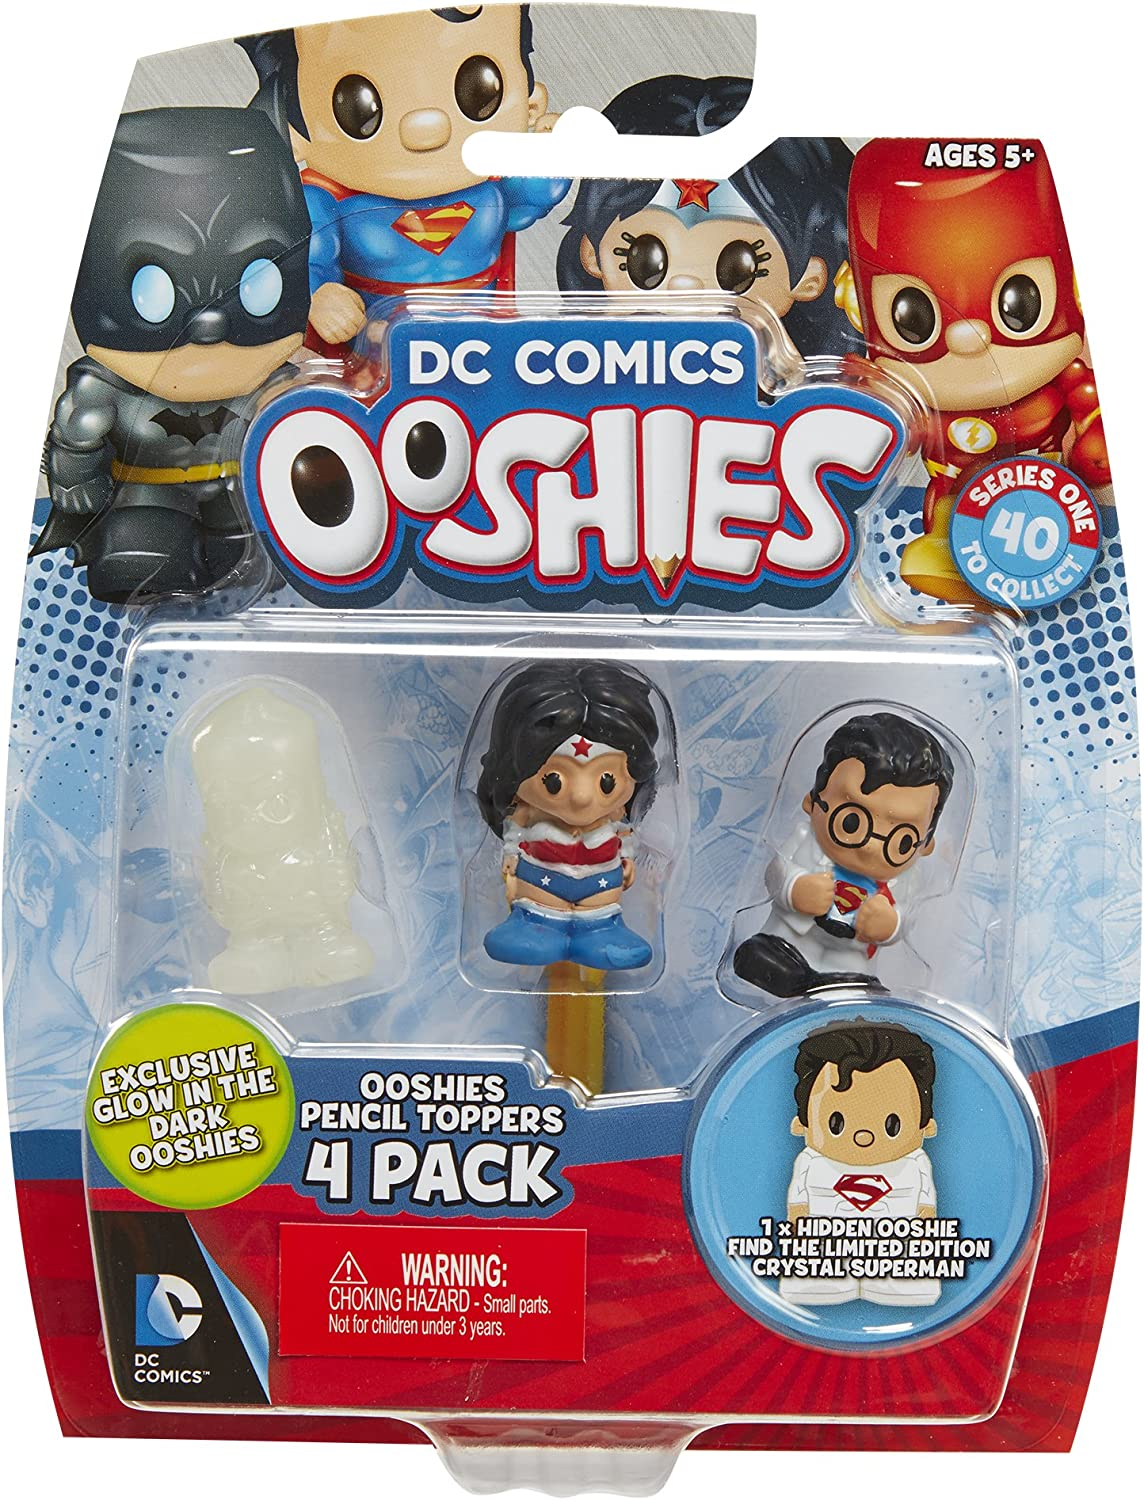 4 Pack Ooshies Set 4 DC Comics Series 1 Action Figure